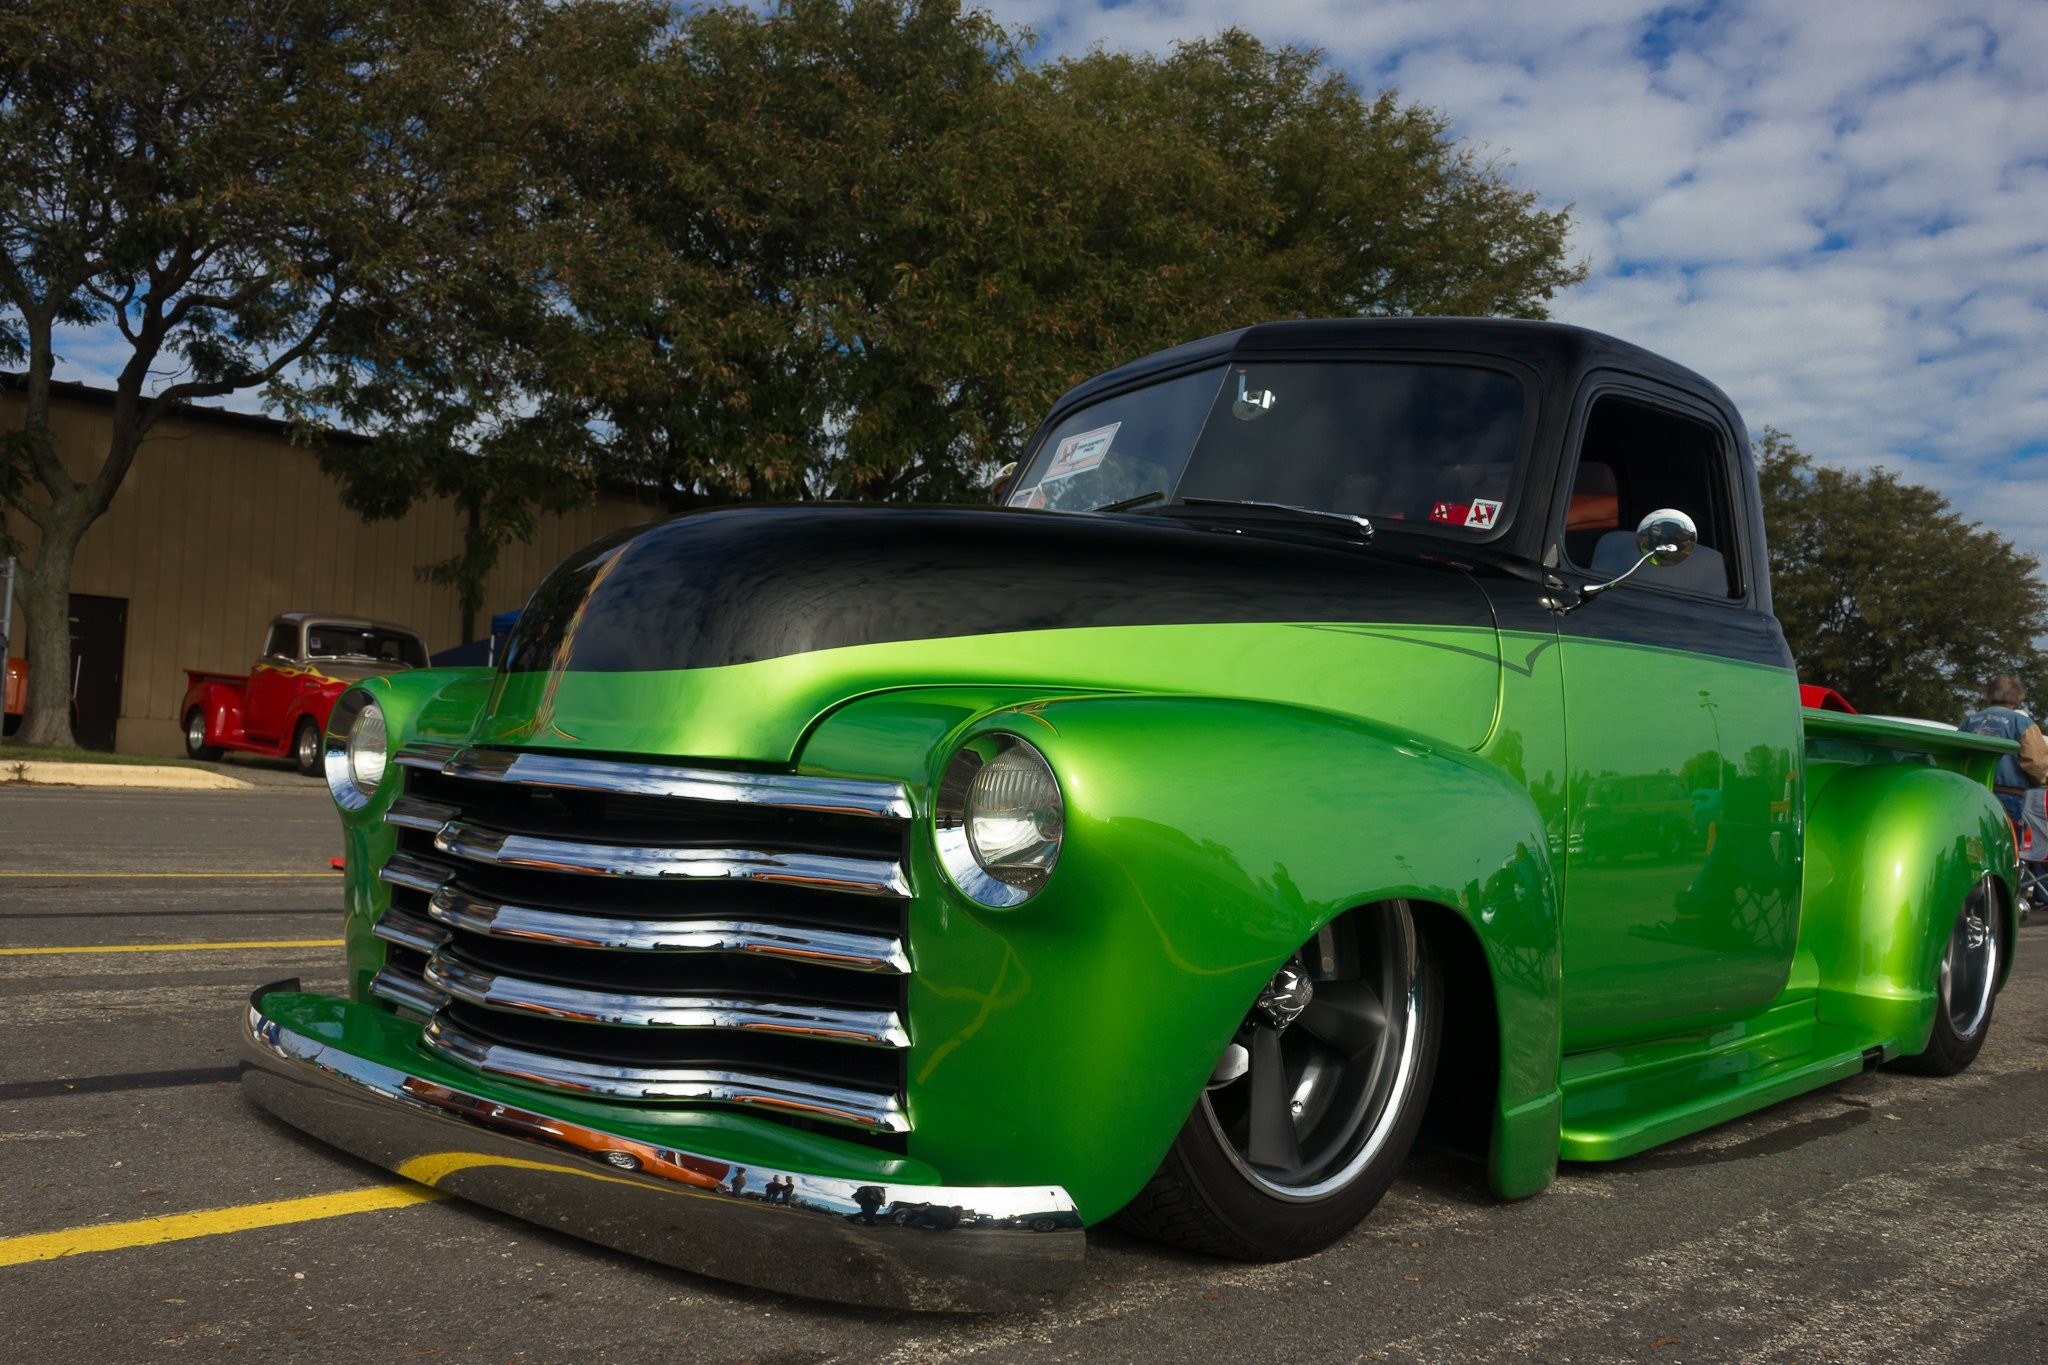 1957 Cars Restored Or Wallpapers Old Chevy Truck Wallpaper 51 Images